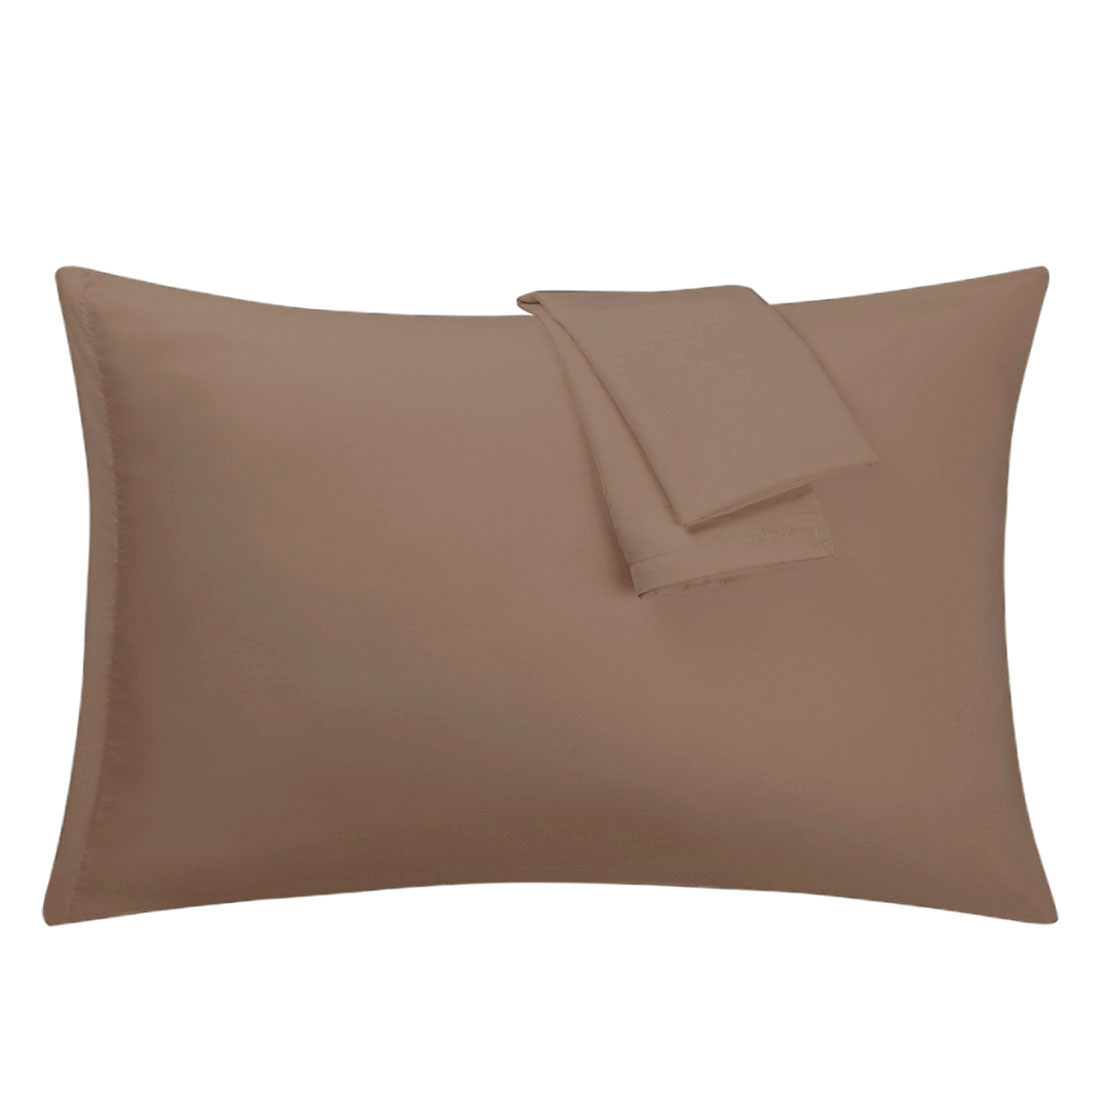 Brown Pillowcases Soft Microfiber Pillow Case Cover with Zipper Standard, 2 Pack